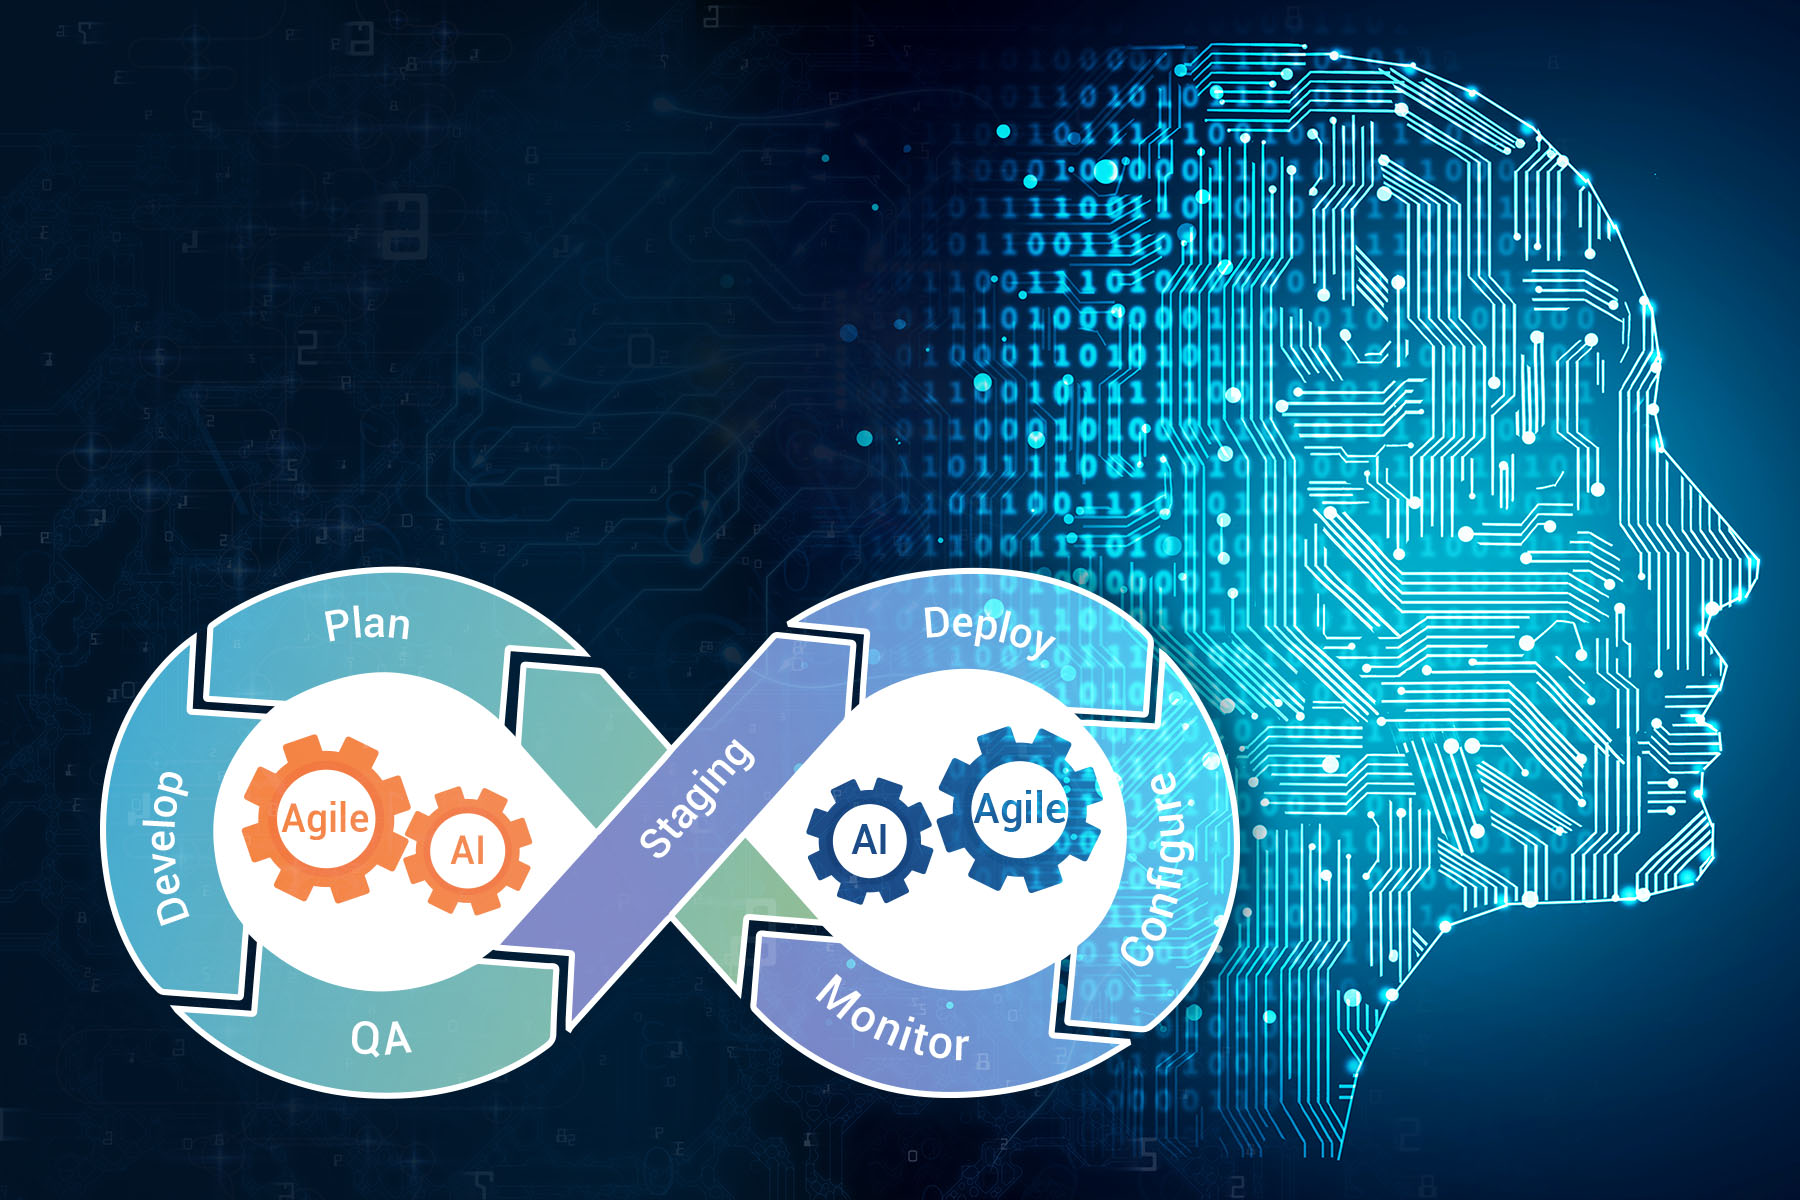 AI powered DevOps for agile software delivery